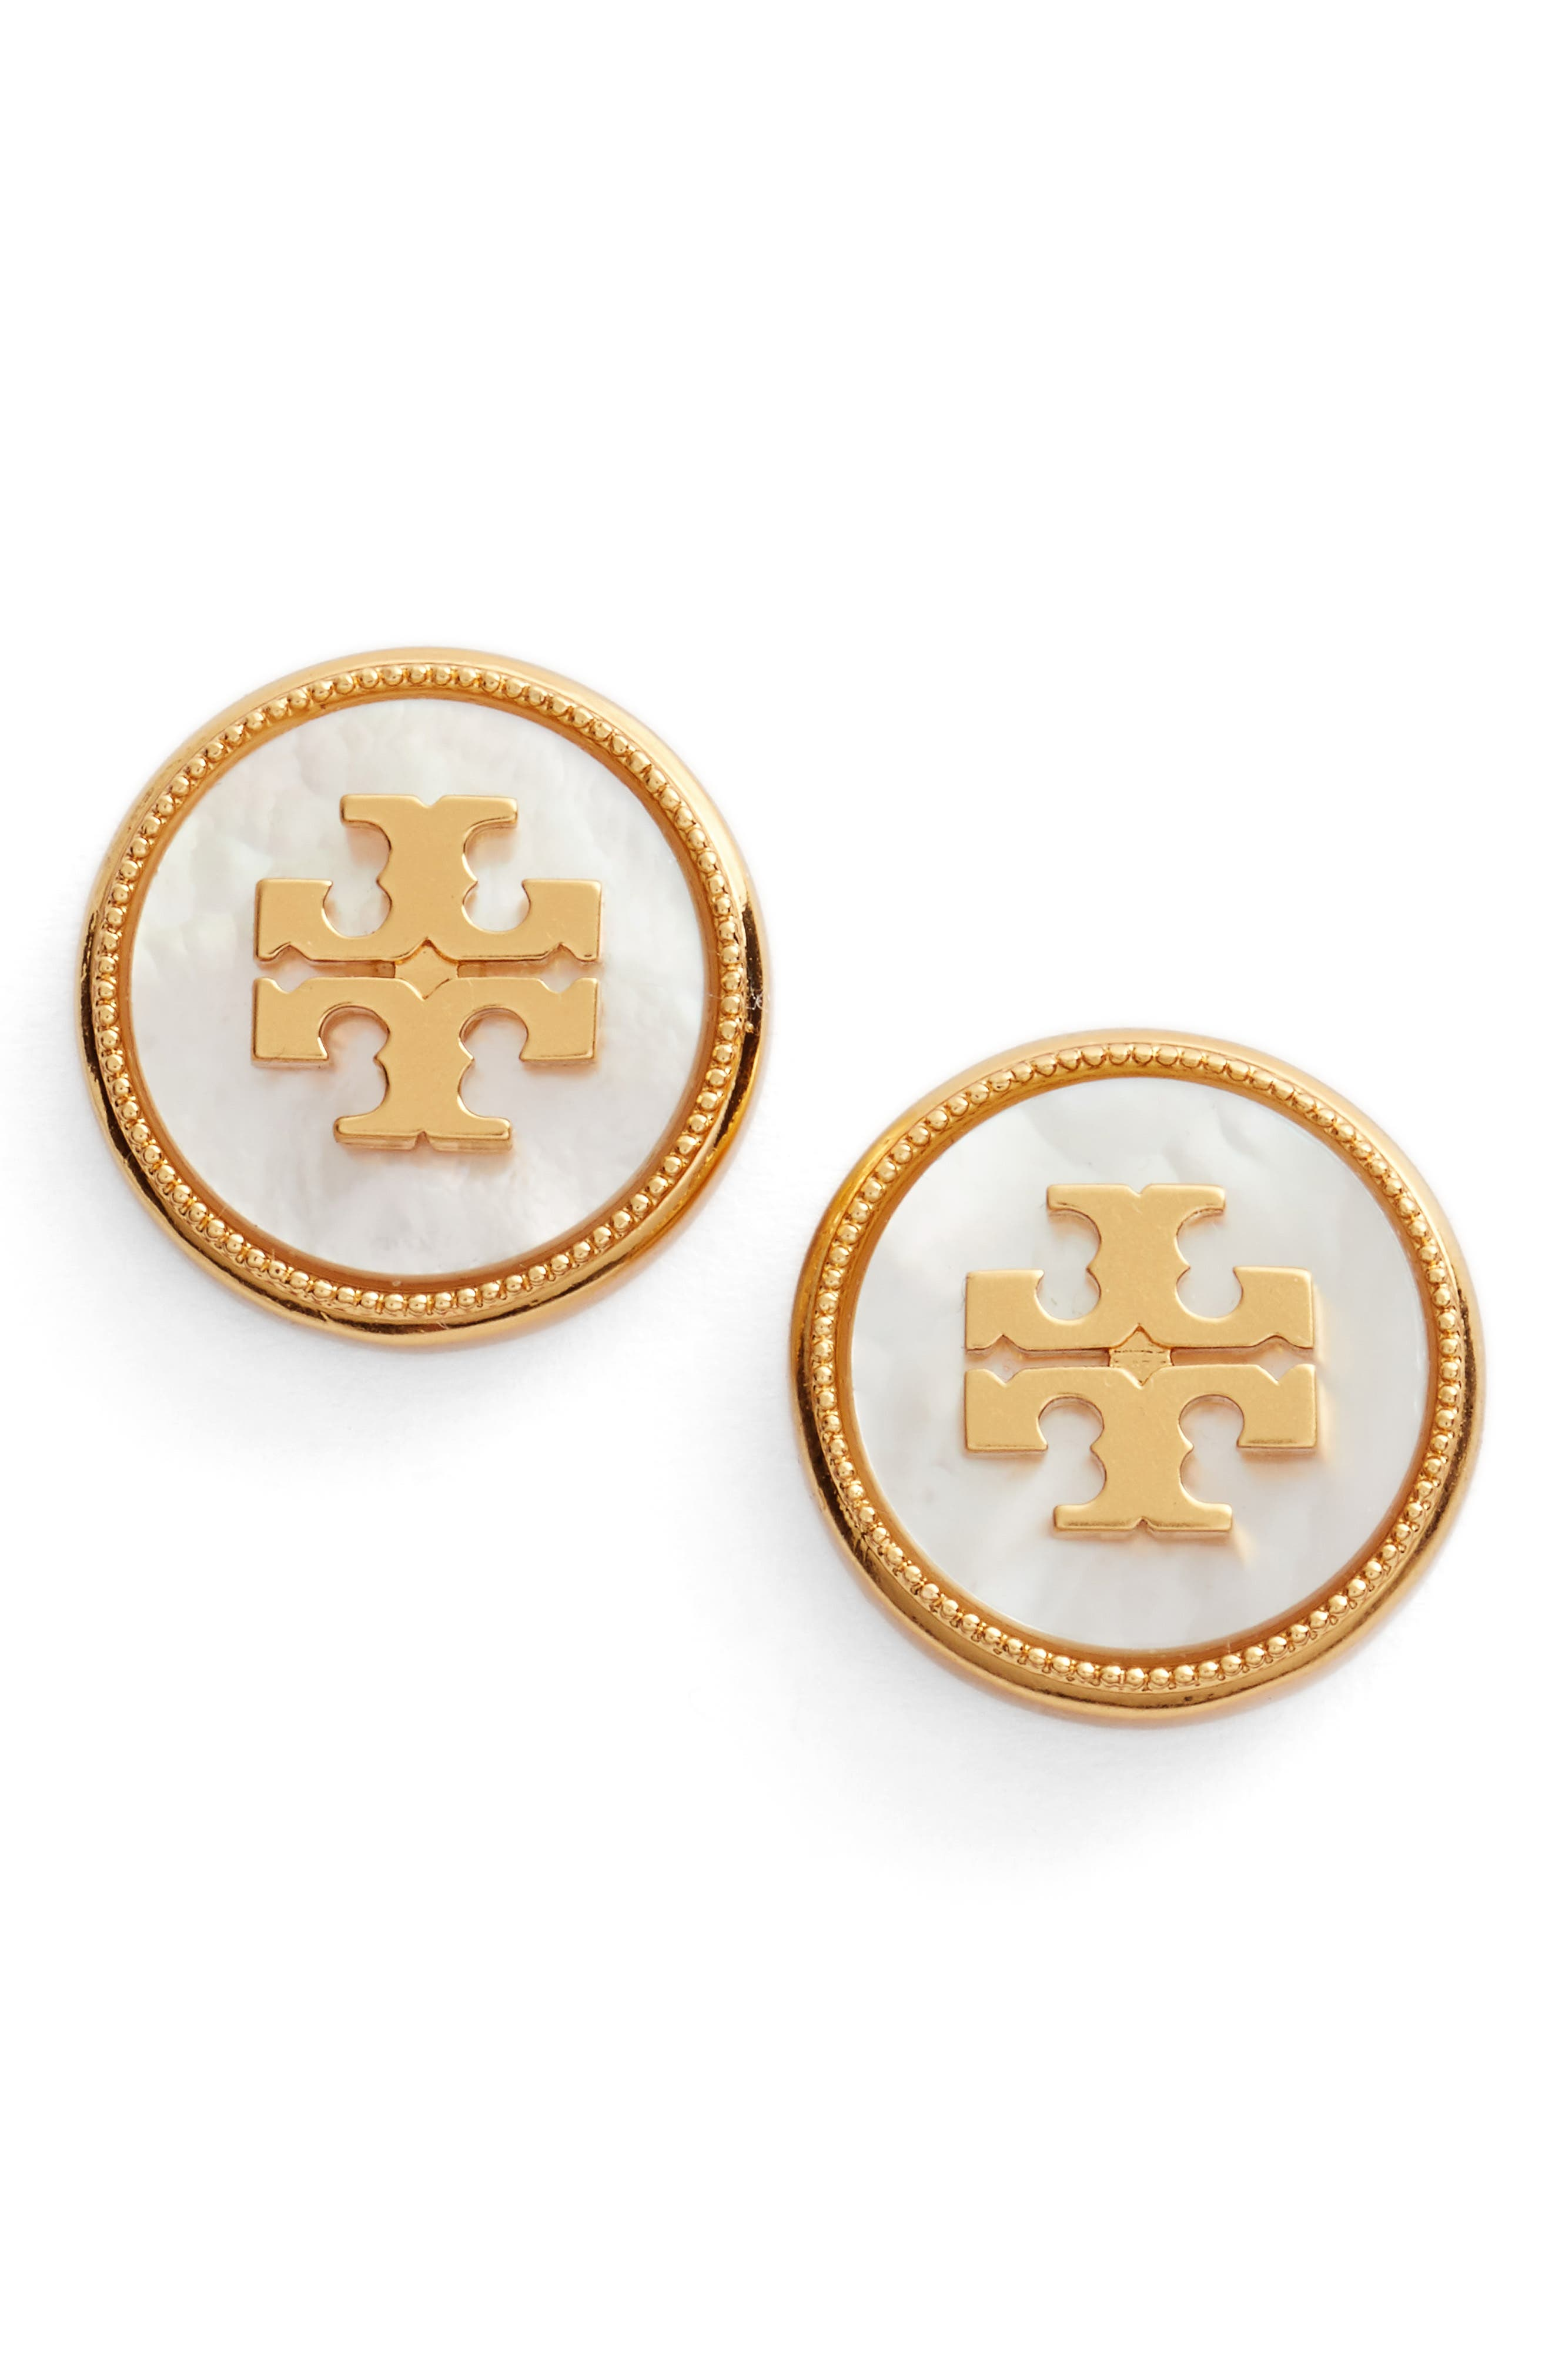 TORY BURCH, Semiprecious Stone Stud Earrings, Main thumbnail 1, color, MOTHER OF PEARL / VINTAGE GOLD